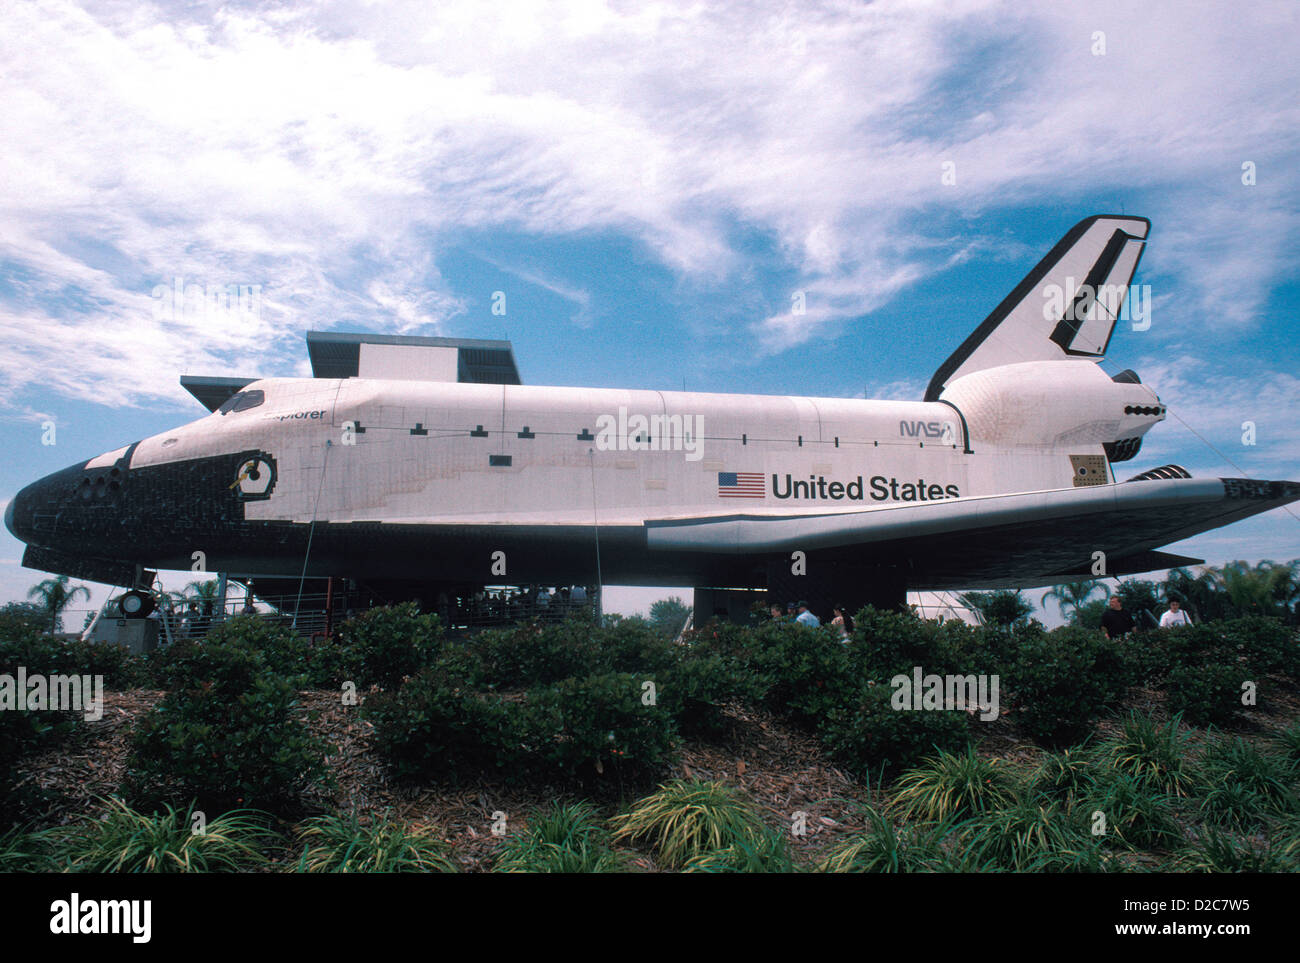 florida space shuttle - photo #25